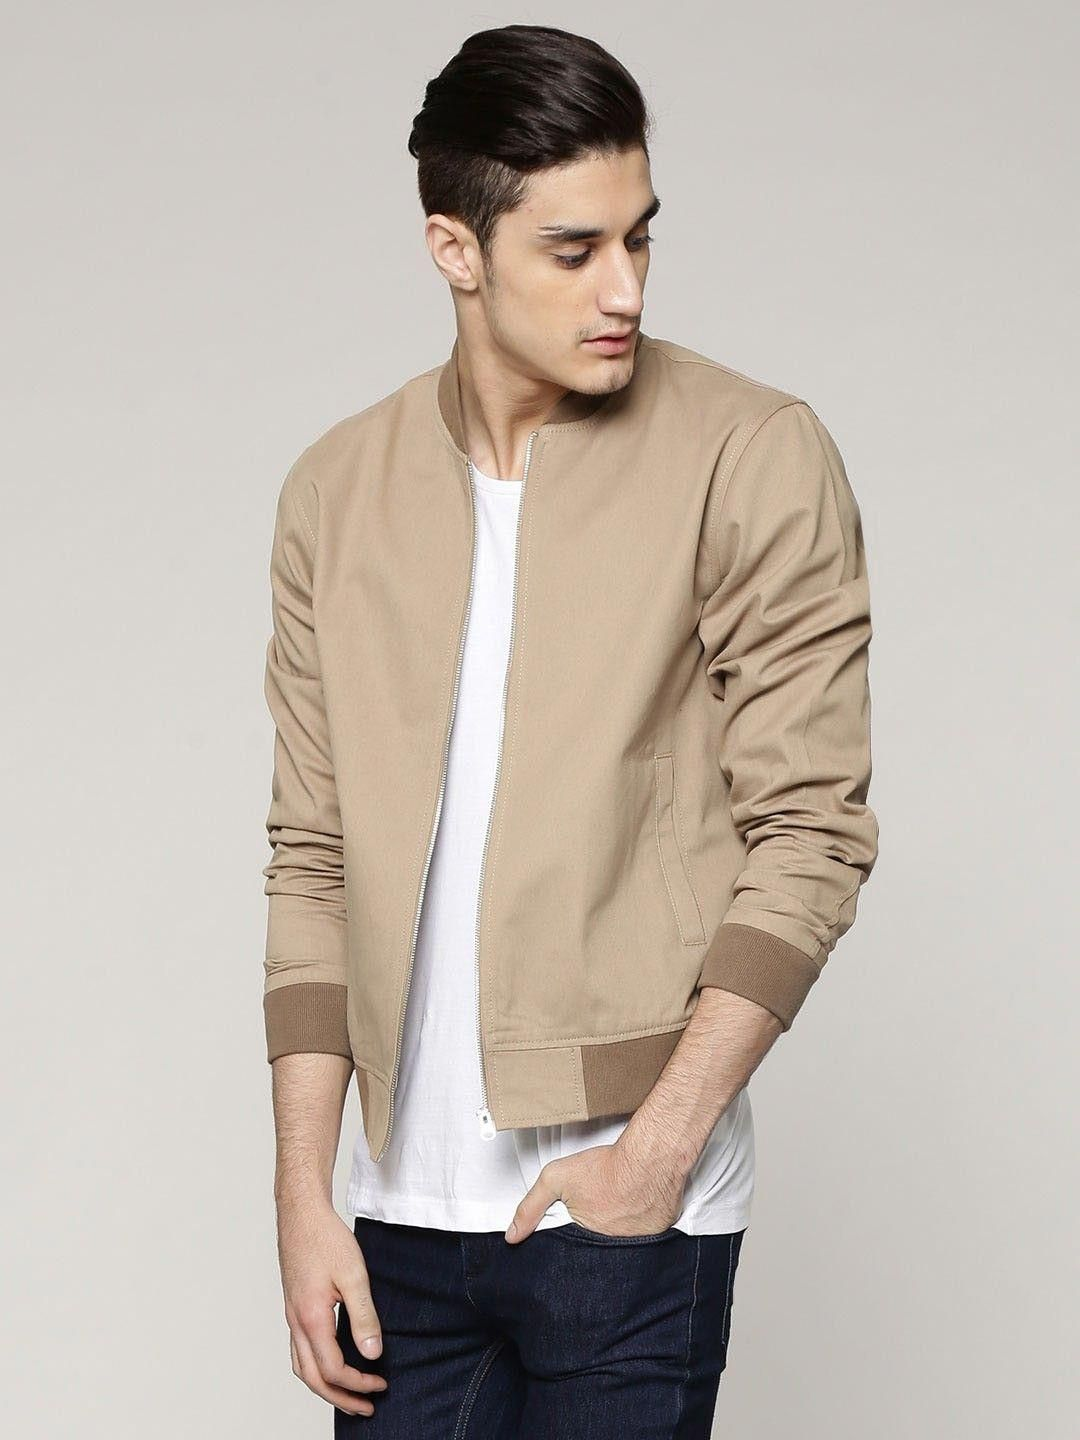 Buy New Look Cotton Twill Bomber Jacket For Men Men S Brown Bomber Jackets Mensfashionstyle Bomber Jacket Outfit Bomber Jacket Men Brown Bomber Jacket [ jpg ]